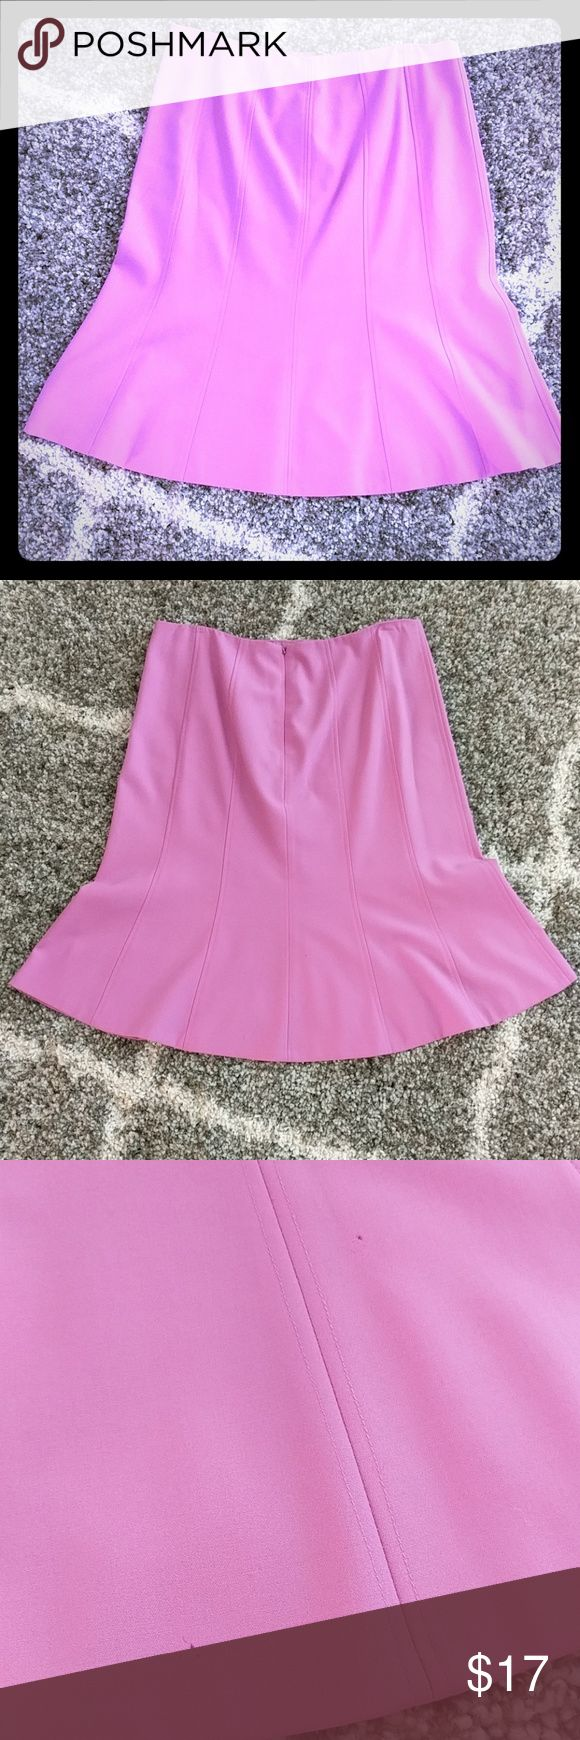 Ann Taylor Pink Trumpet Skirt You'll find yourself wanting to swing your hips in this playful, pink trumpet skirt from Ann Taylor.  Two very small pin holes in very back of skirt reflected in price. Ann Taylor Skirts A-Line or Full